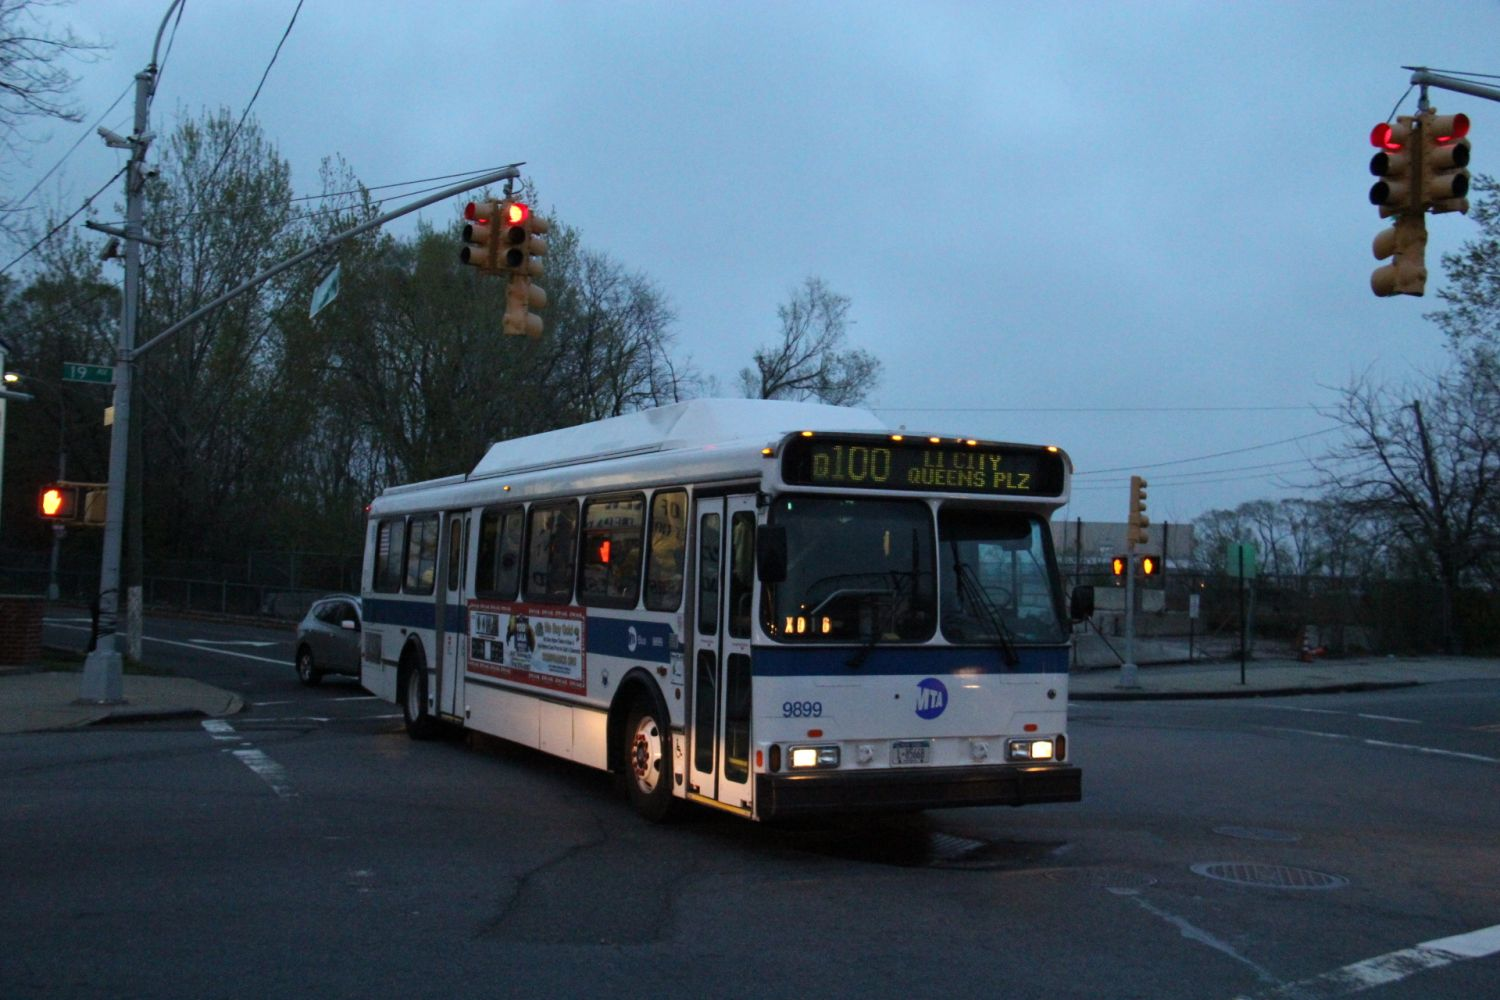 Orion V CNG Q100 at Hazen Street and 19th Avenue